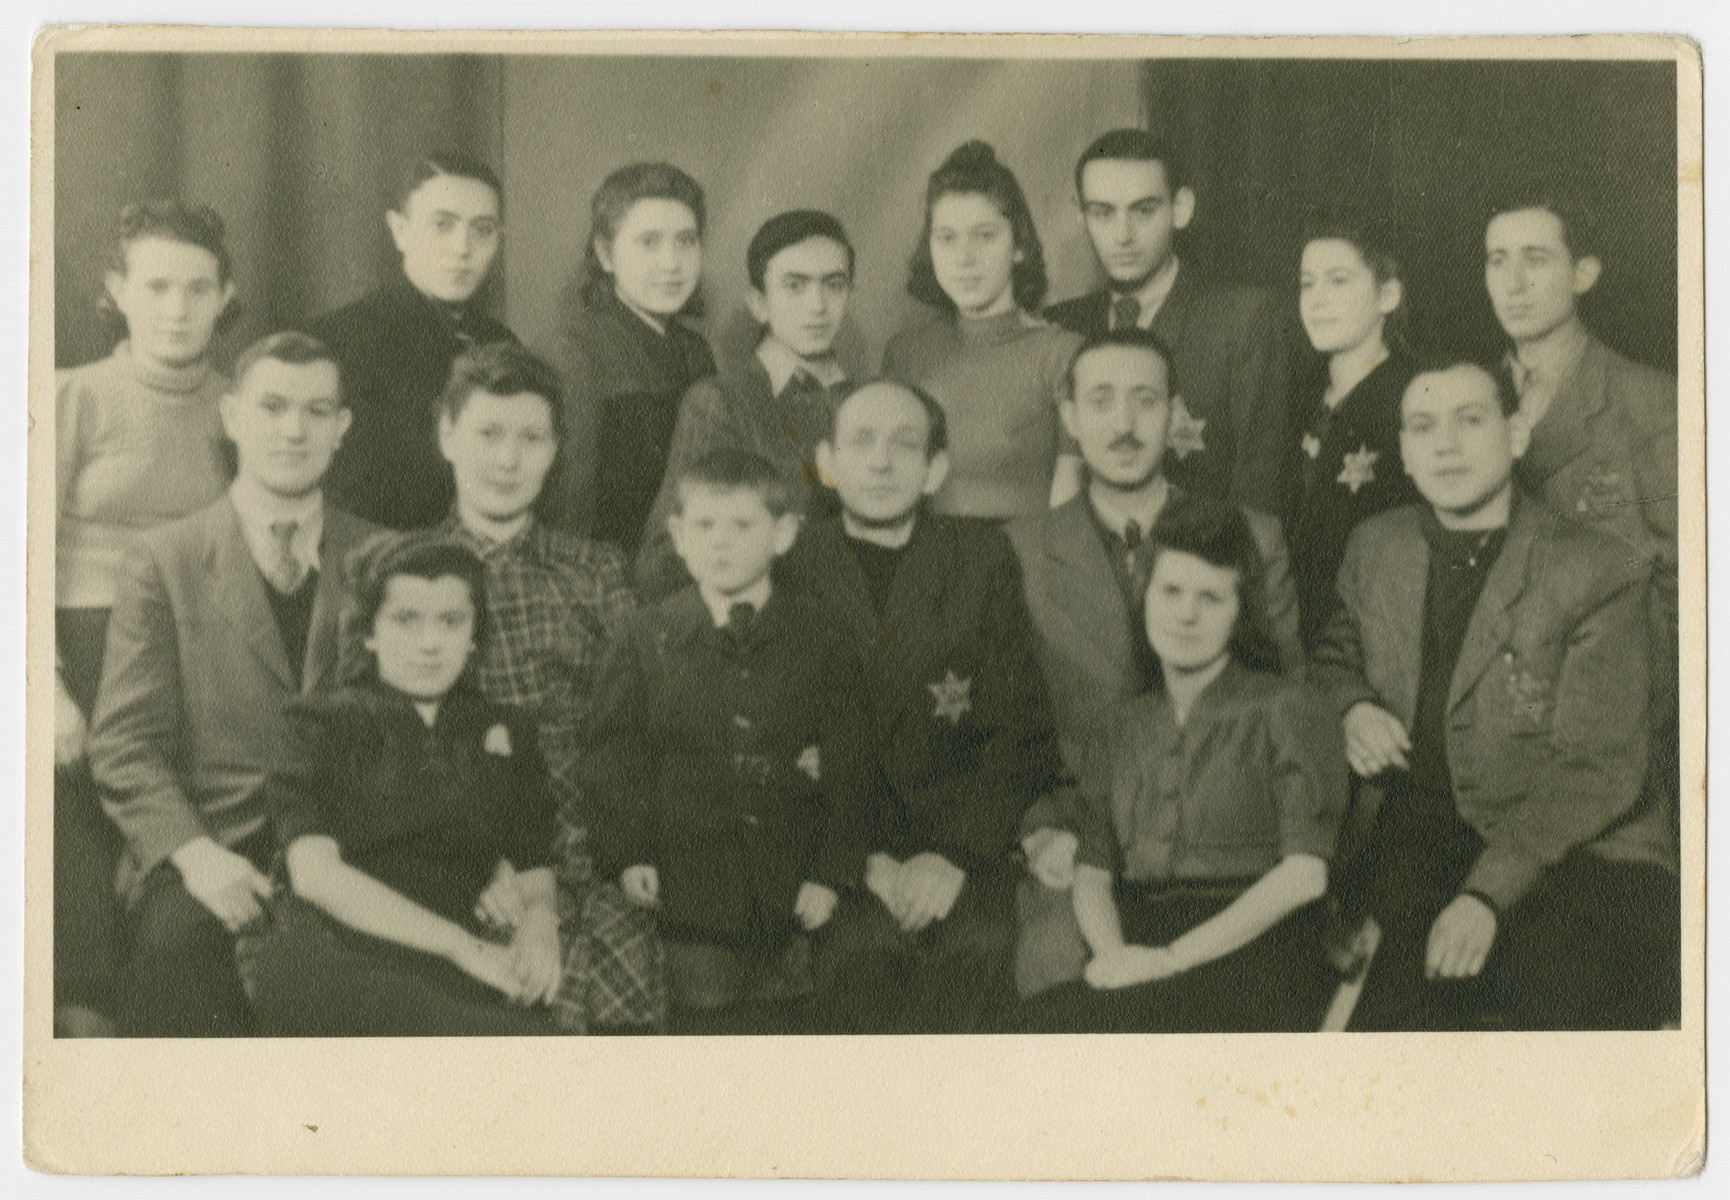 Group portrait of Jews in the Bedzin ghetto wearing the Jewish star.             Among those pictured are Ruchale Hassenberg, Chaske Hassenberg and Motek Wandesan.